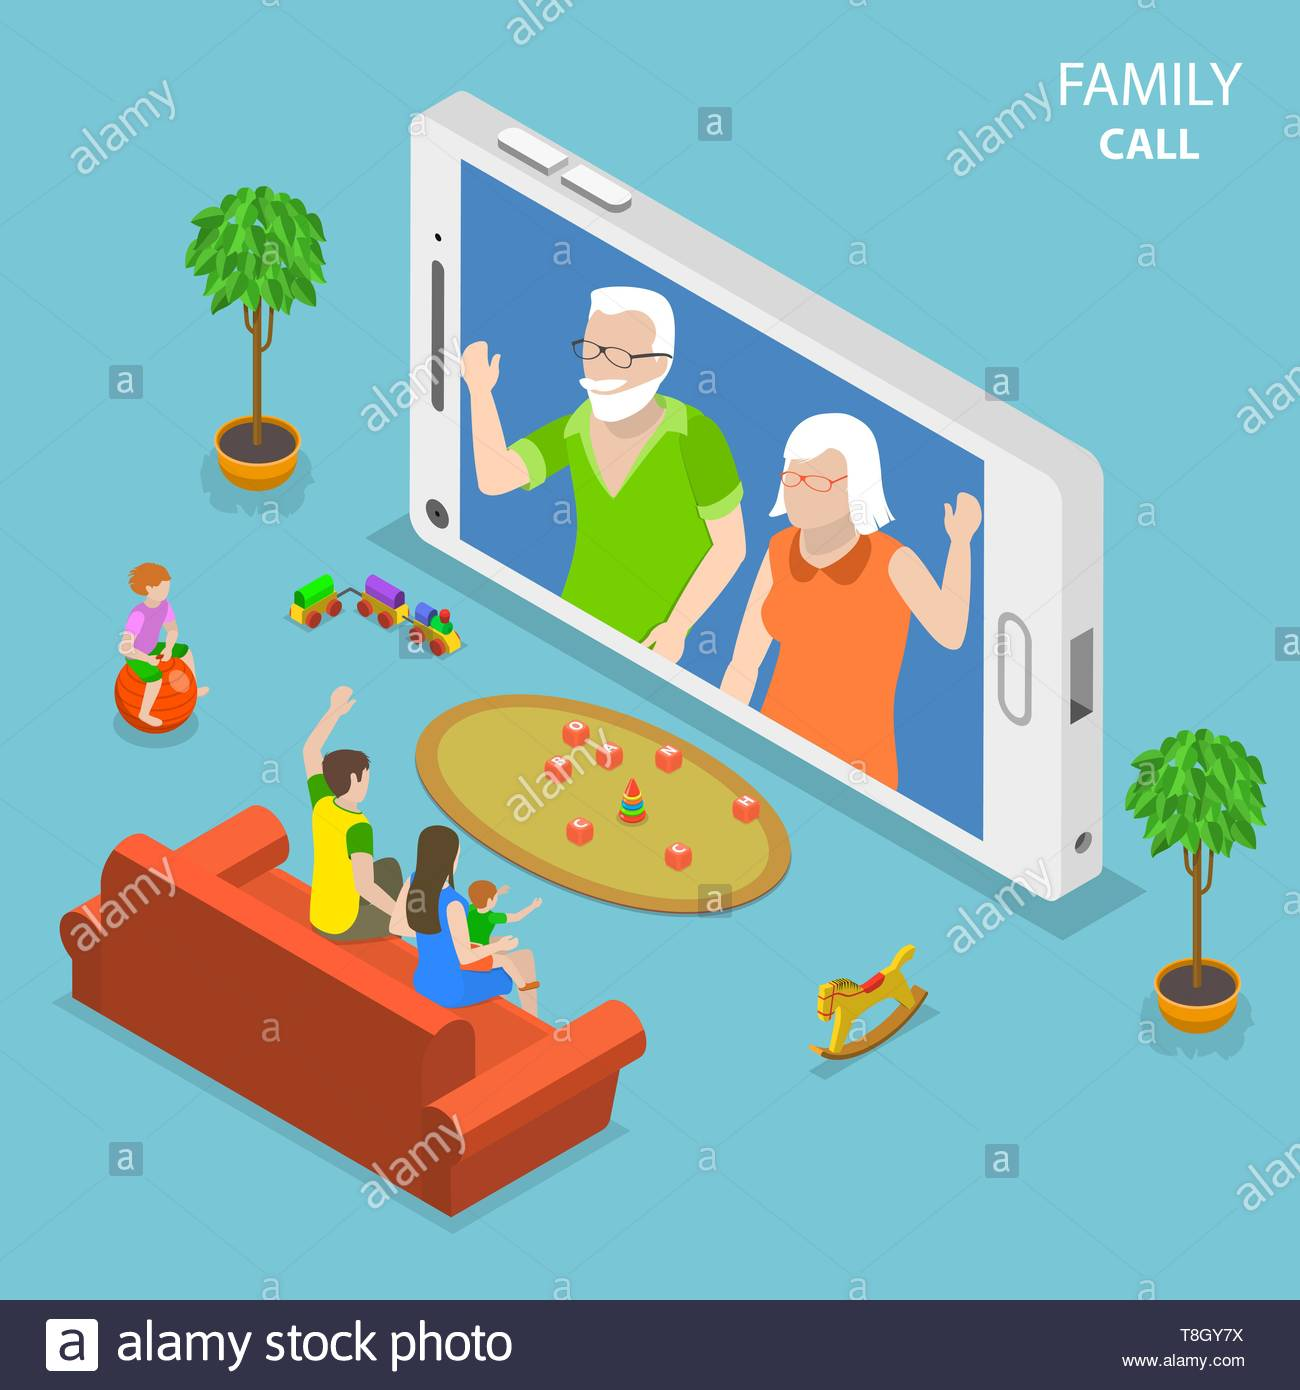 Family call flat isometric vector concept. Young family with 2 kids are having video call with thair parents using the smartphone. - Stock Vector